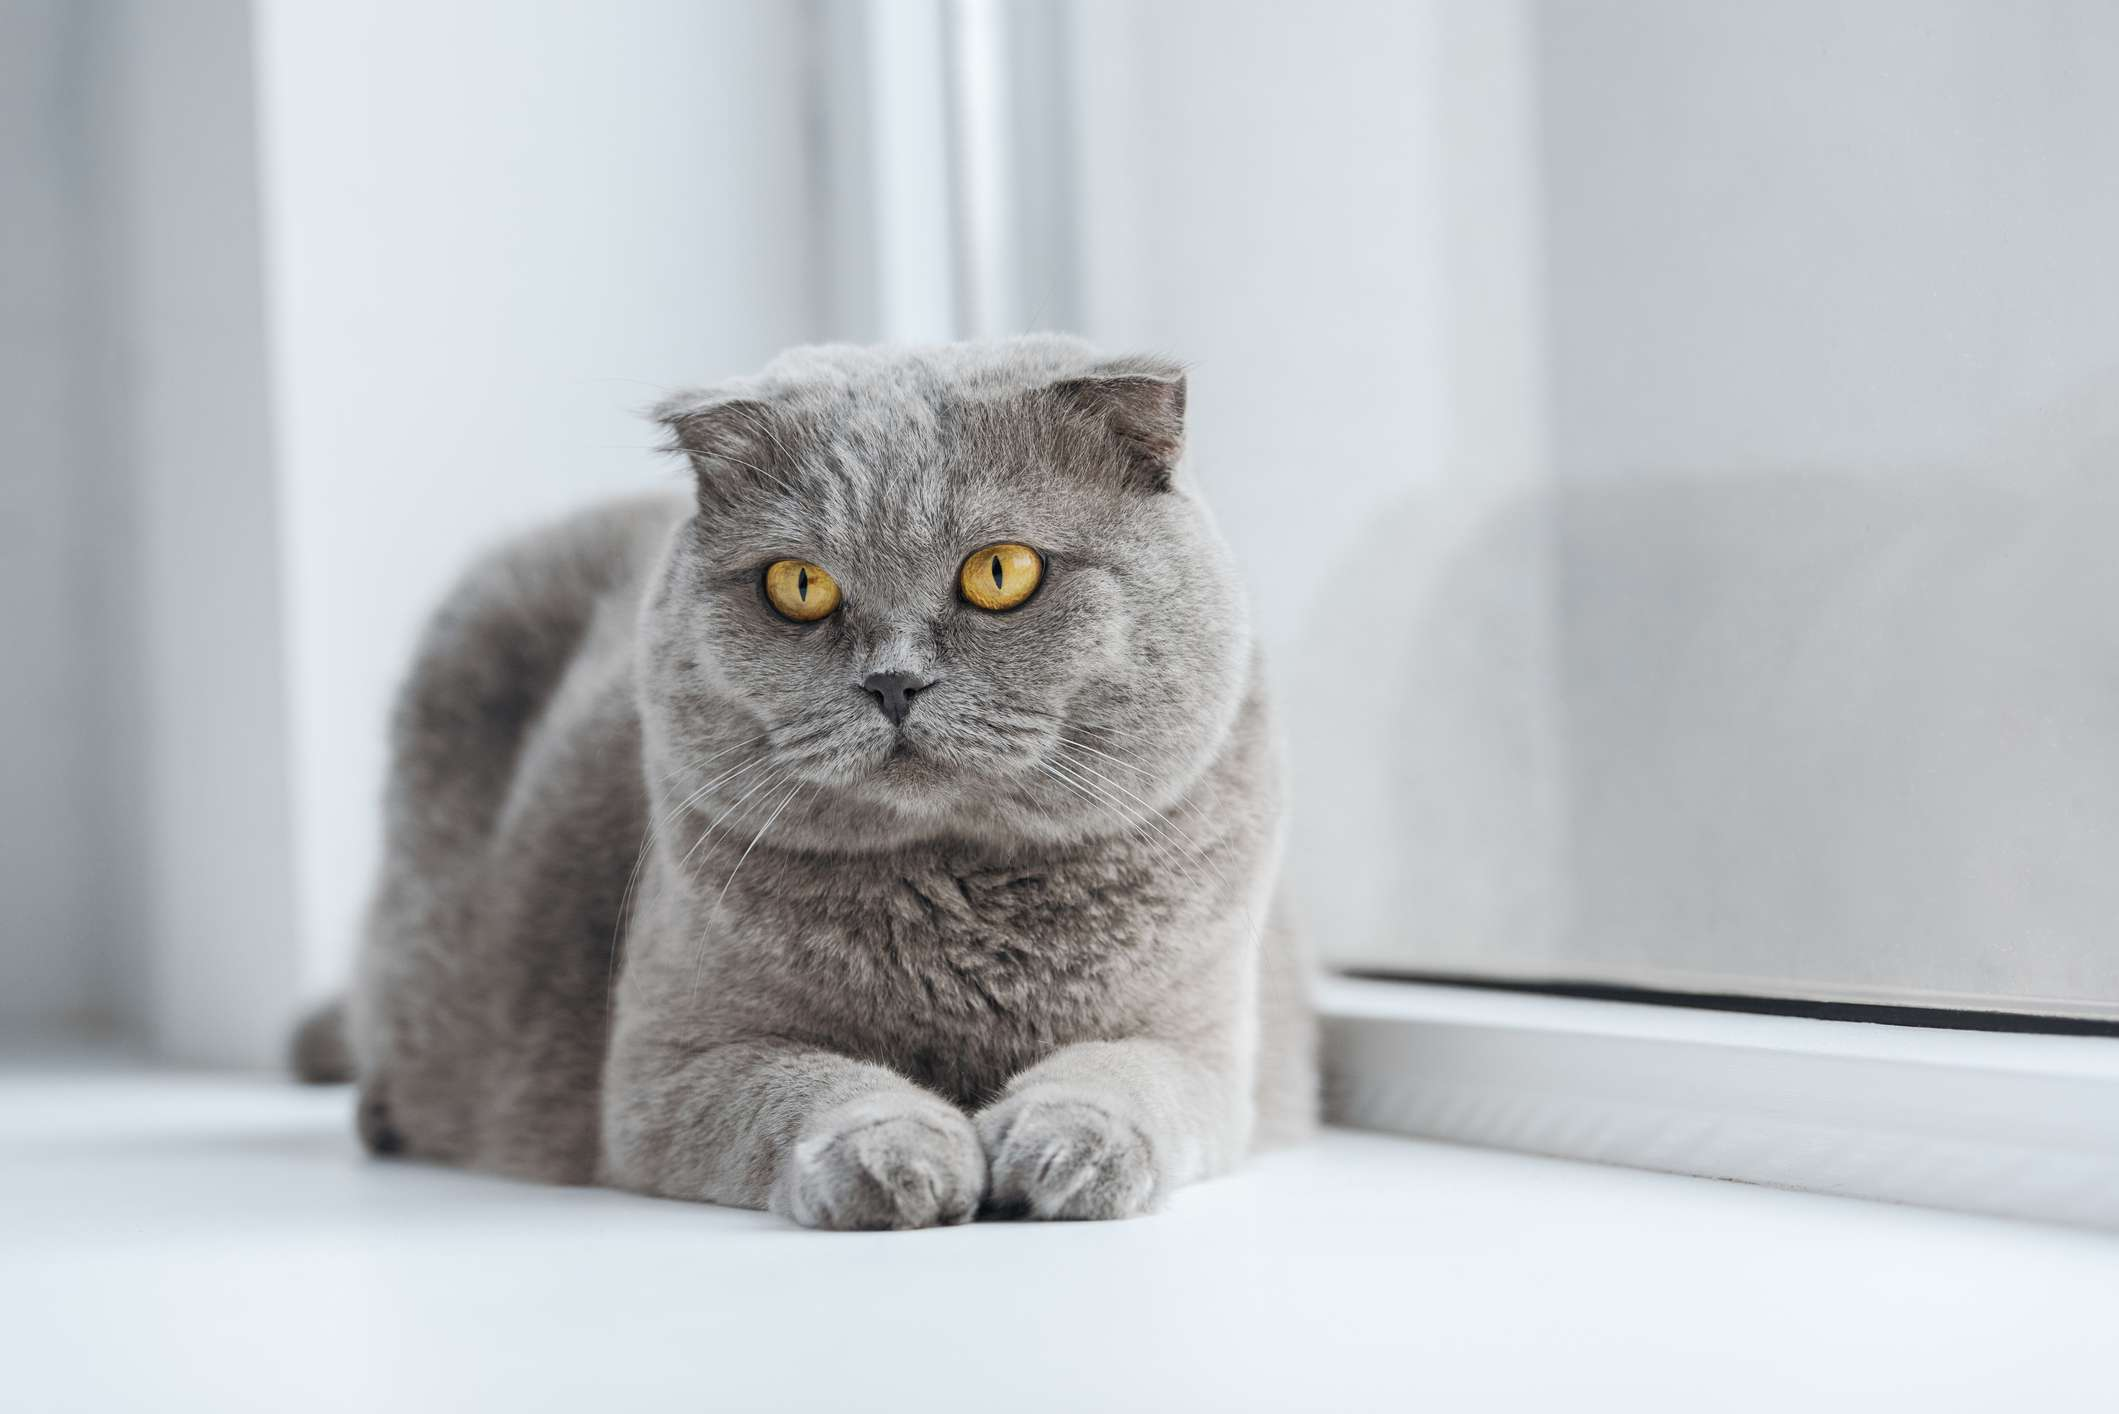 A gray cat with folded-forward ears and yellow eyes.